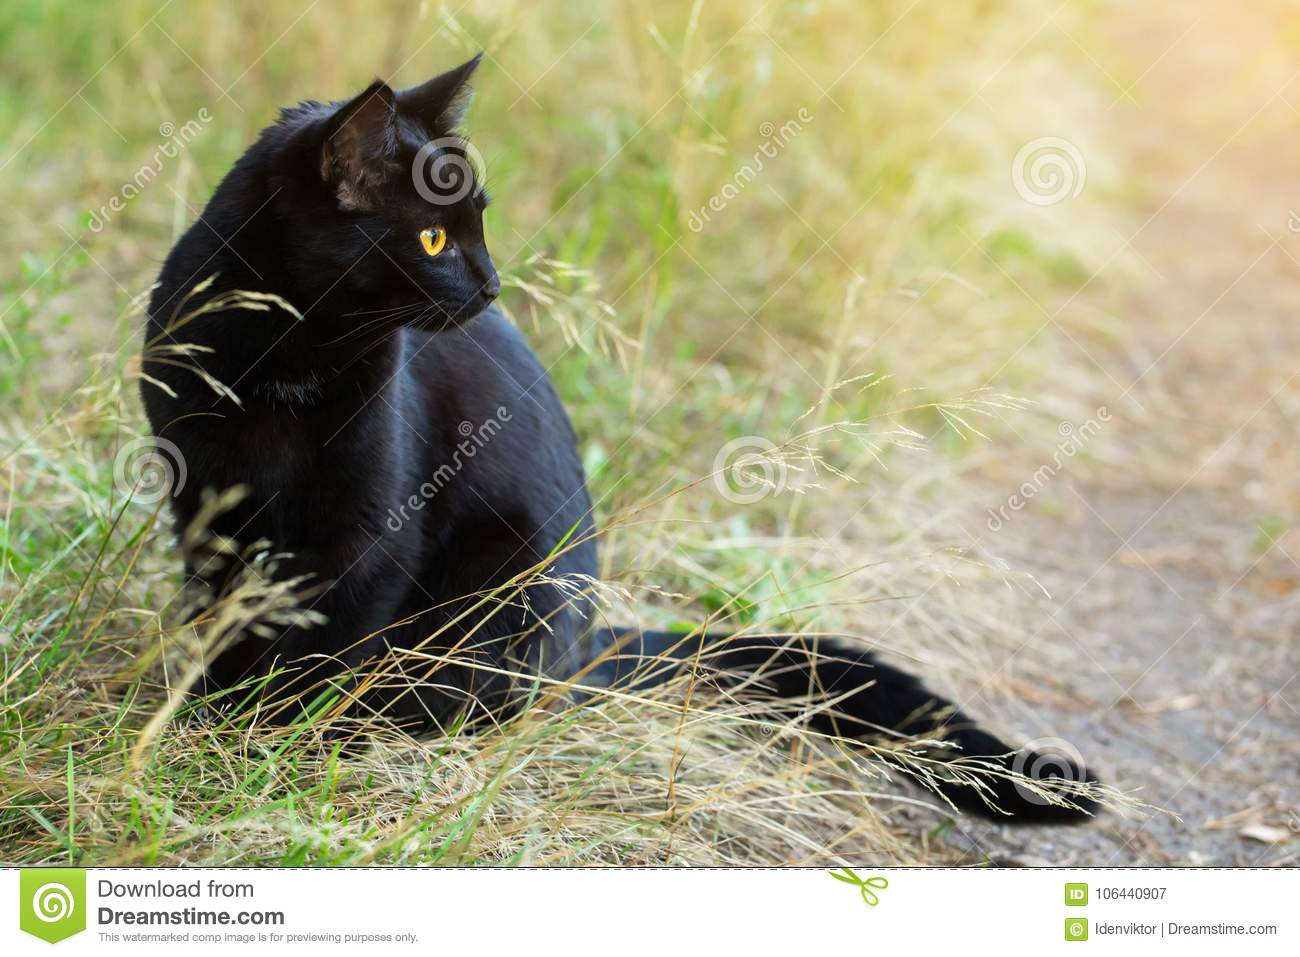 Bombay black cat in profile with yellow eyes in nature.